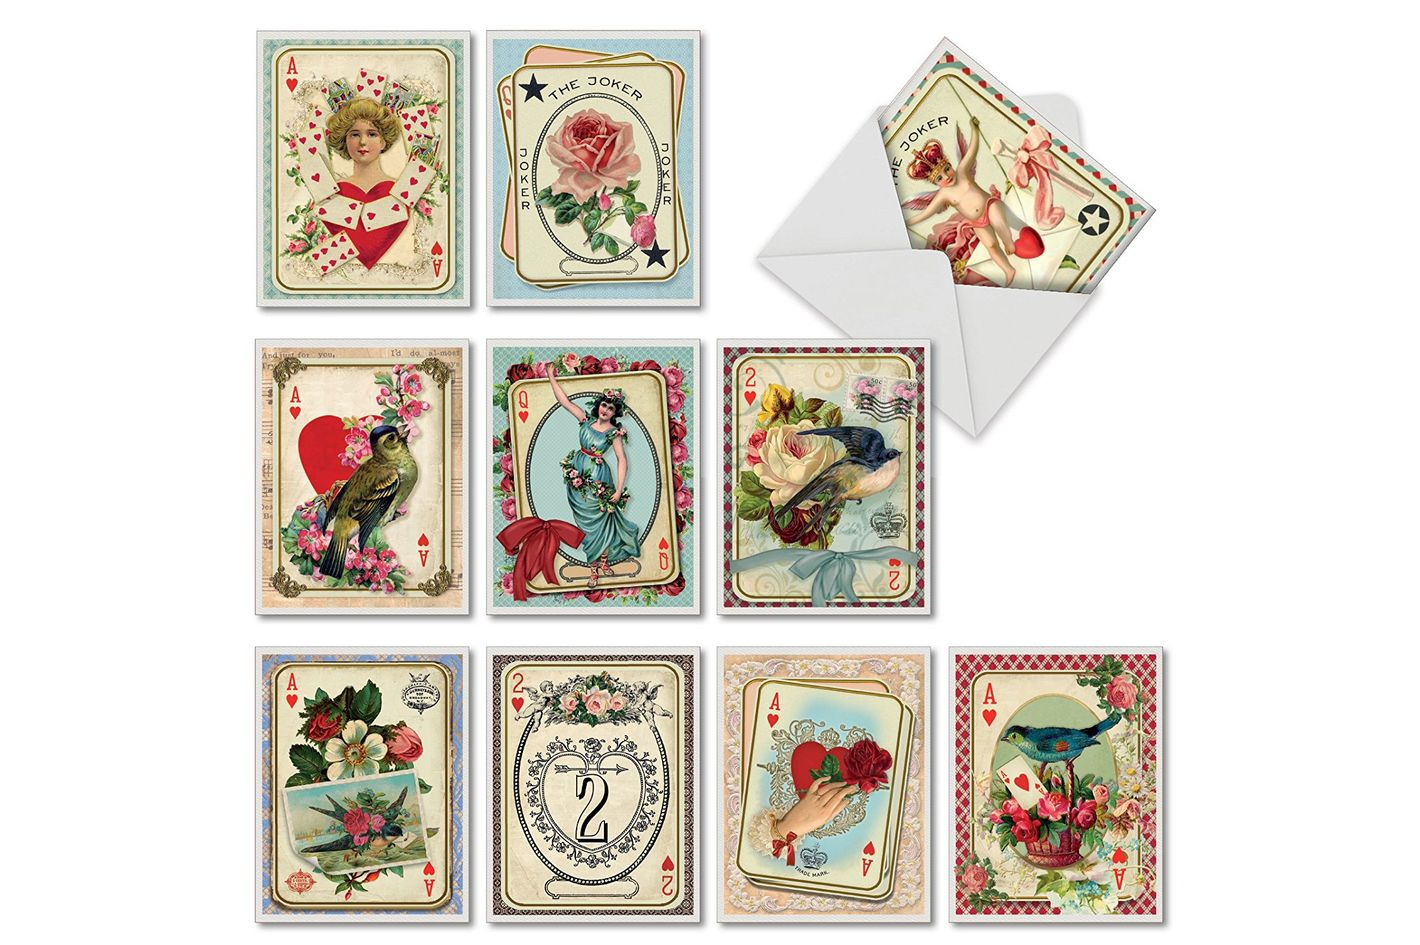 M2381VDG-B1x10 All Decked Out: 10 Assorted Valentine's Day Cards